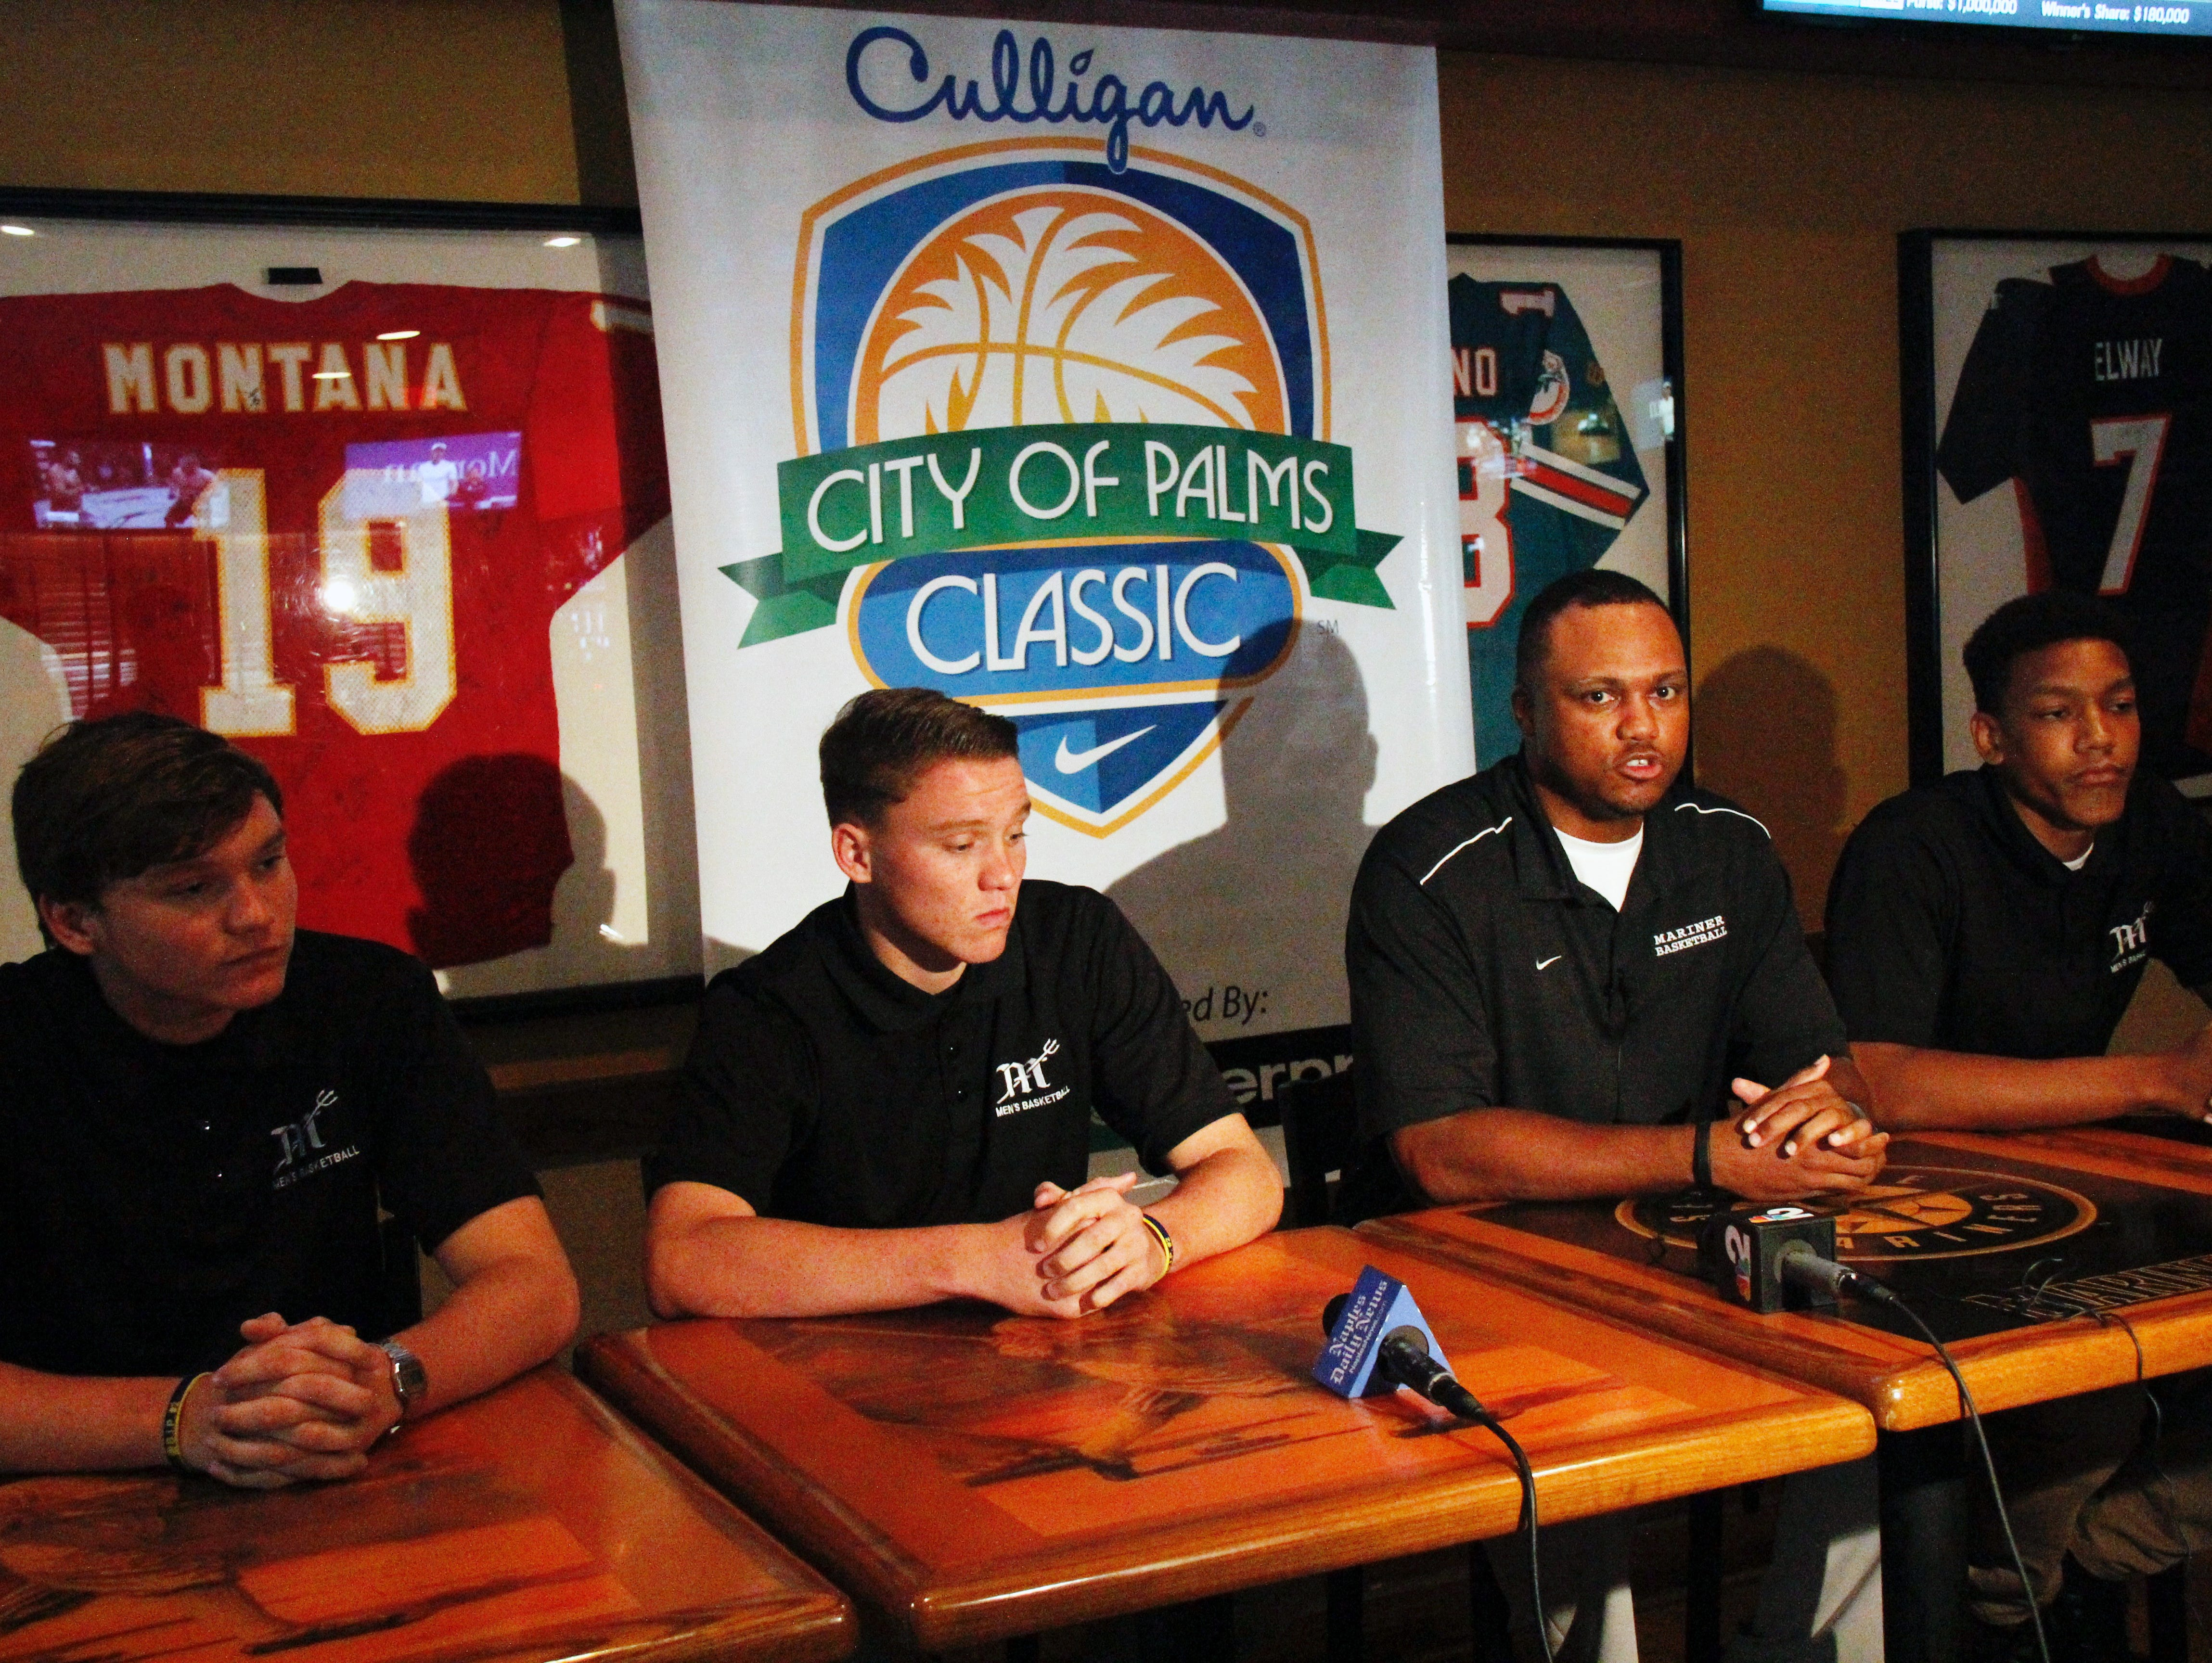 Members of the Cape Coral-Mariner basketball team speak during a news conference at Shoeless Joe's Cafe in Fort Myers for the introduction of this years field in the 2016 City of Palms Basketball Classic on Wednesday.